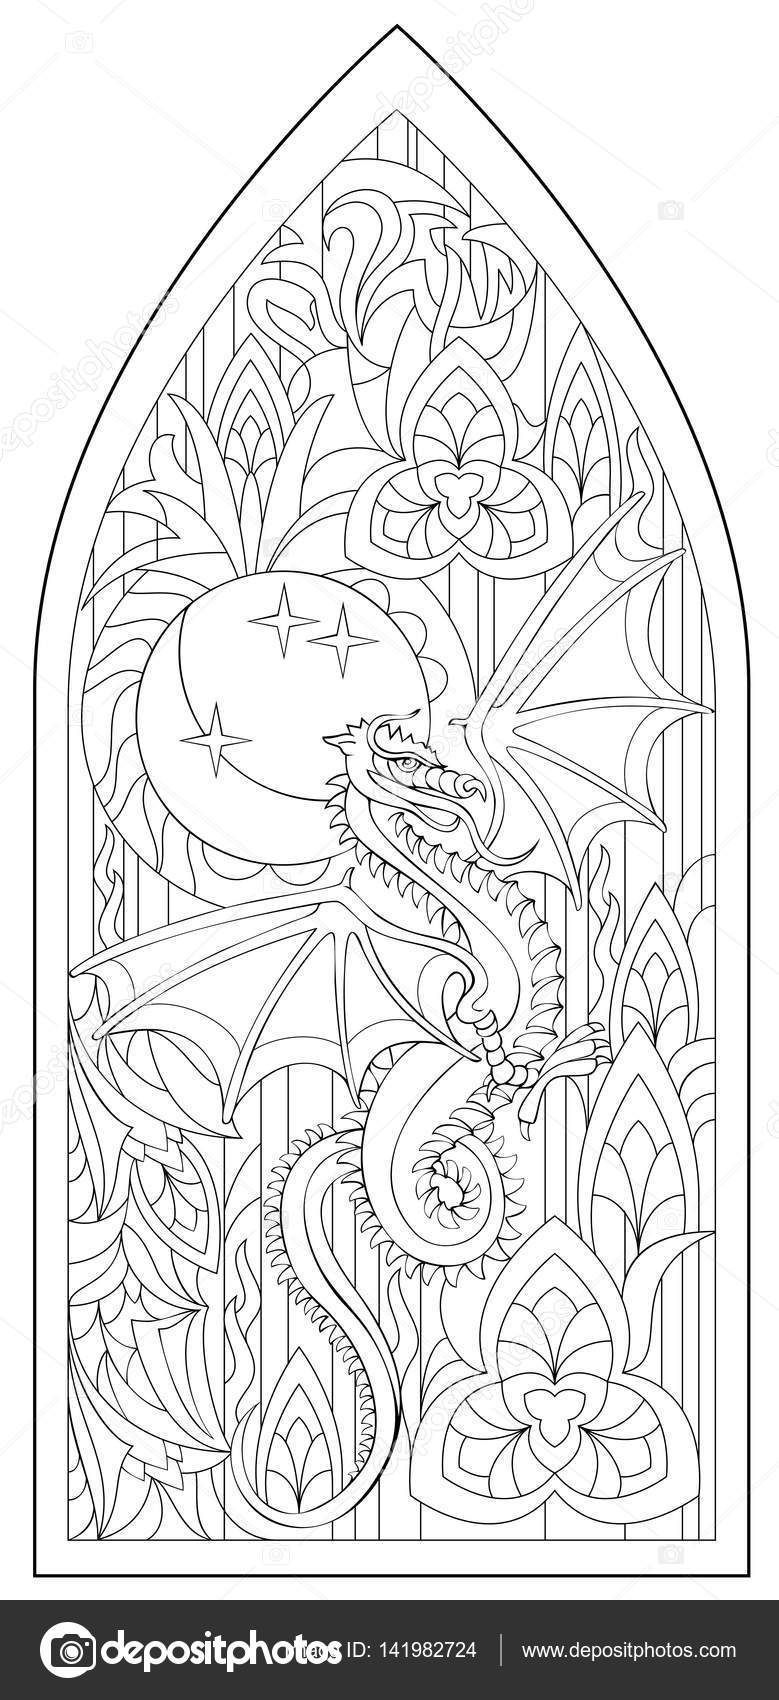 Pin By Barbara On Coloring Dino Dragon Fairy Coloring Pages Dragon Coloring Page Abstract Coloring Pages